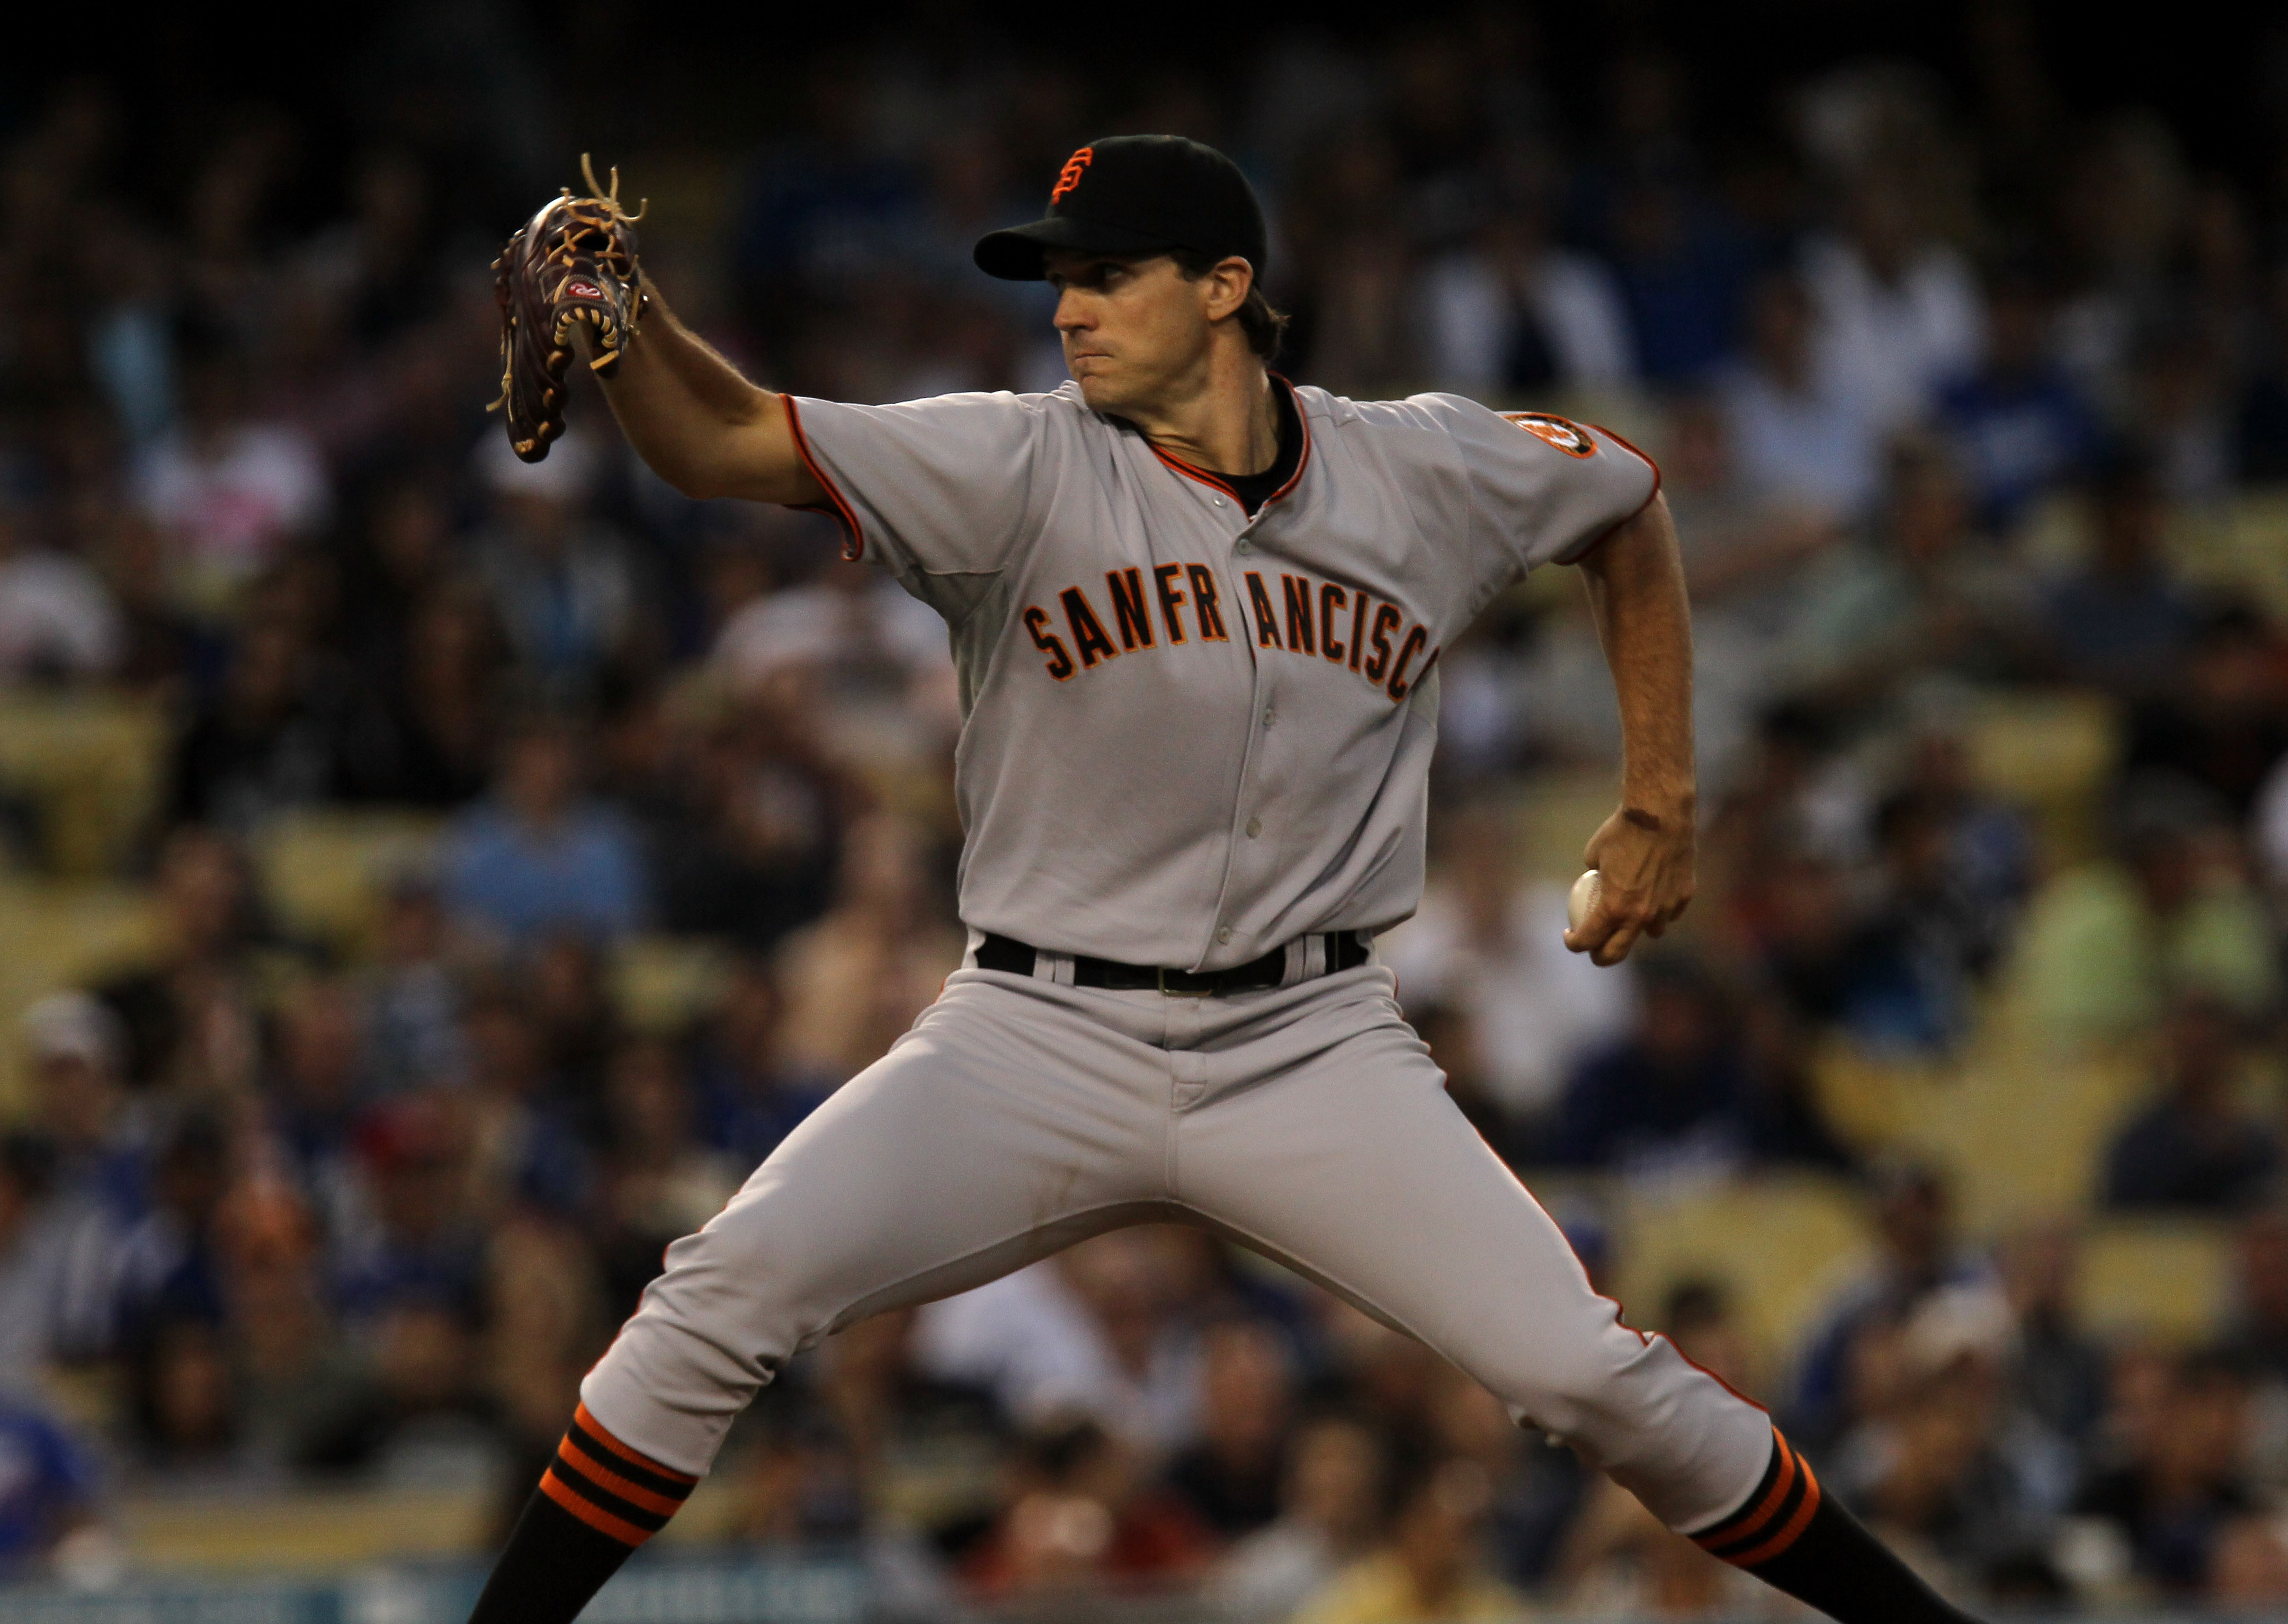 I DO NOT like this arm action, but it has not bothered Zito during his career